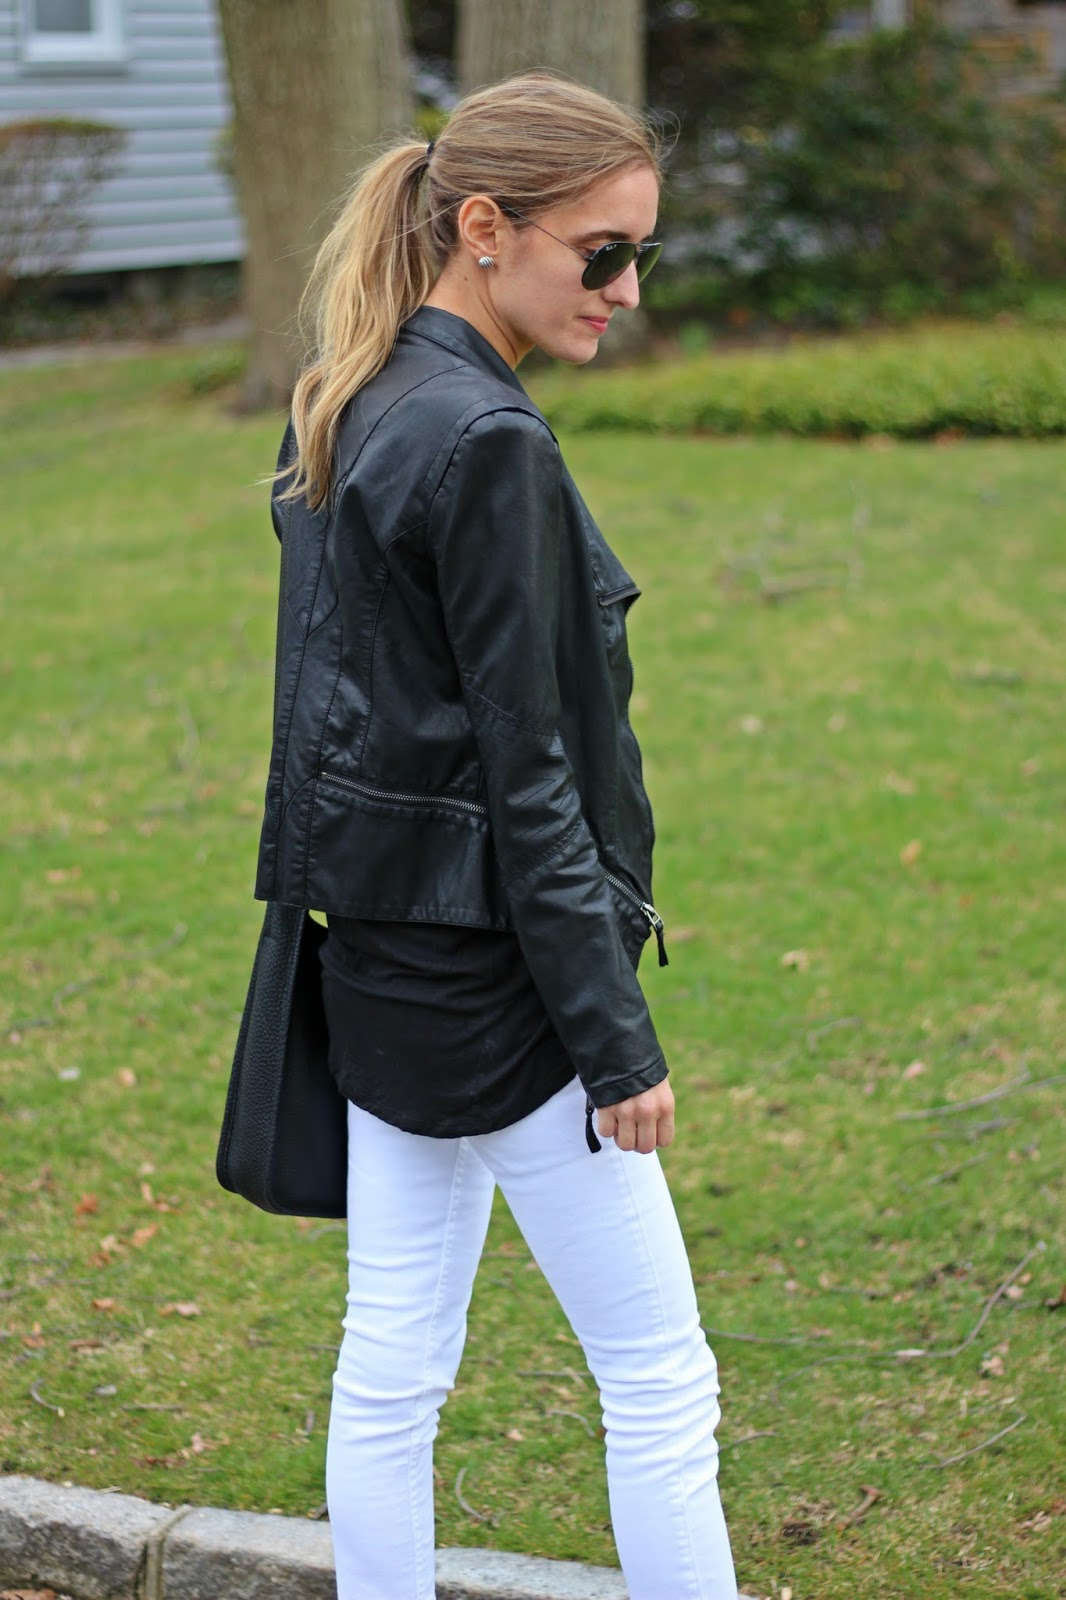 Leather lightweight perfect spring attire best photo